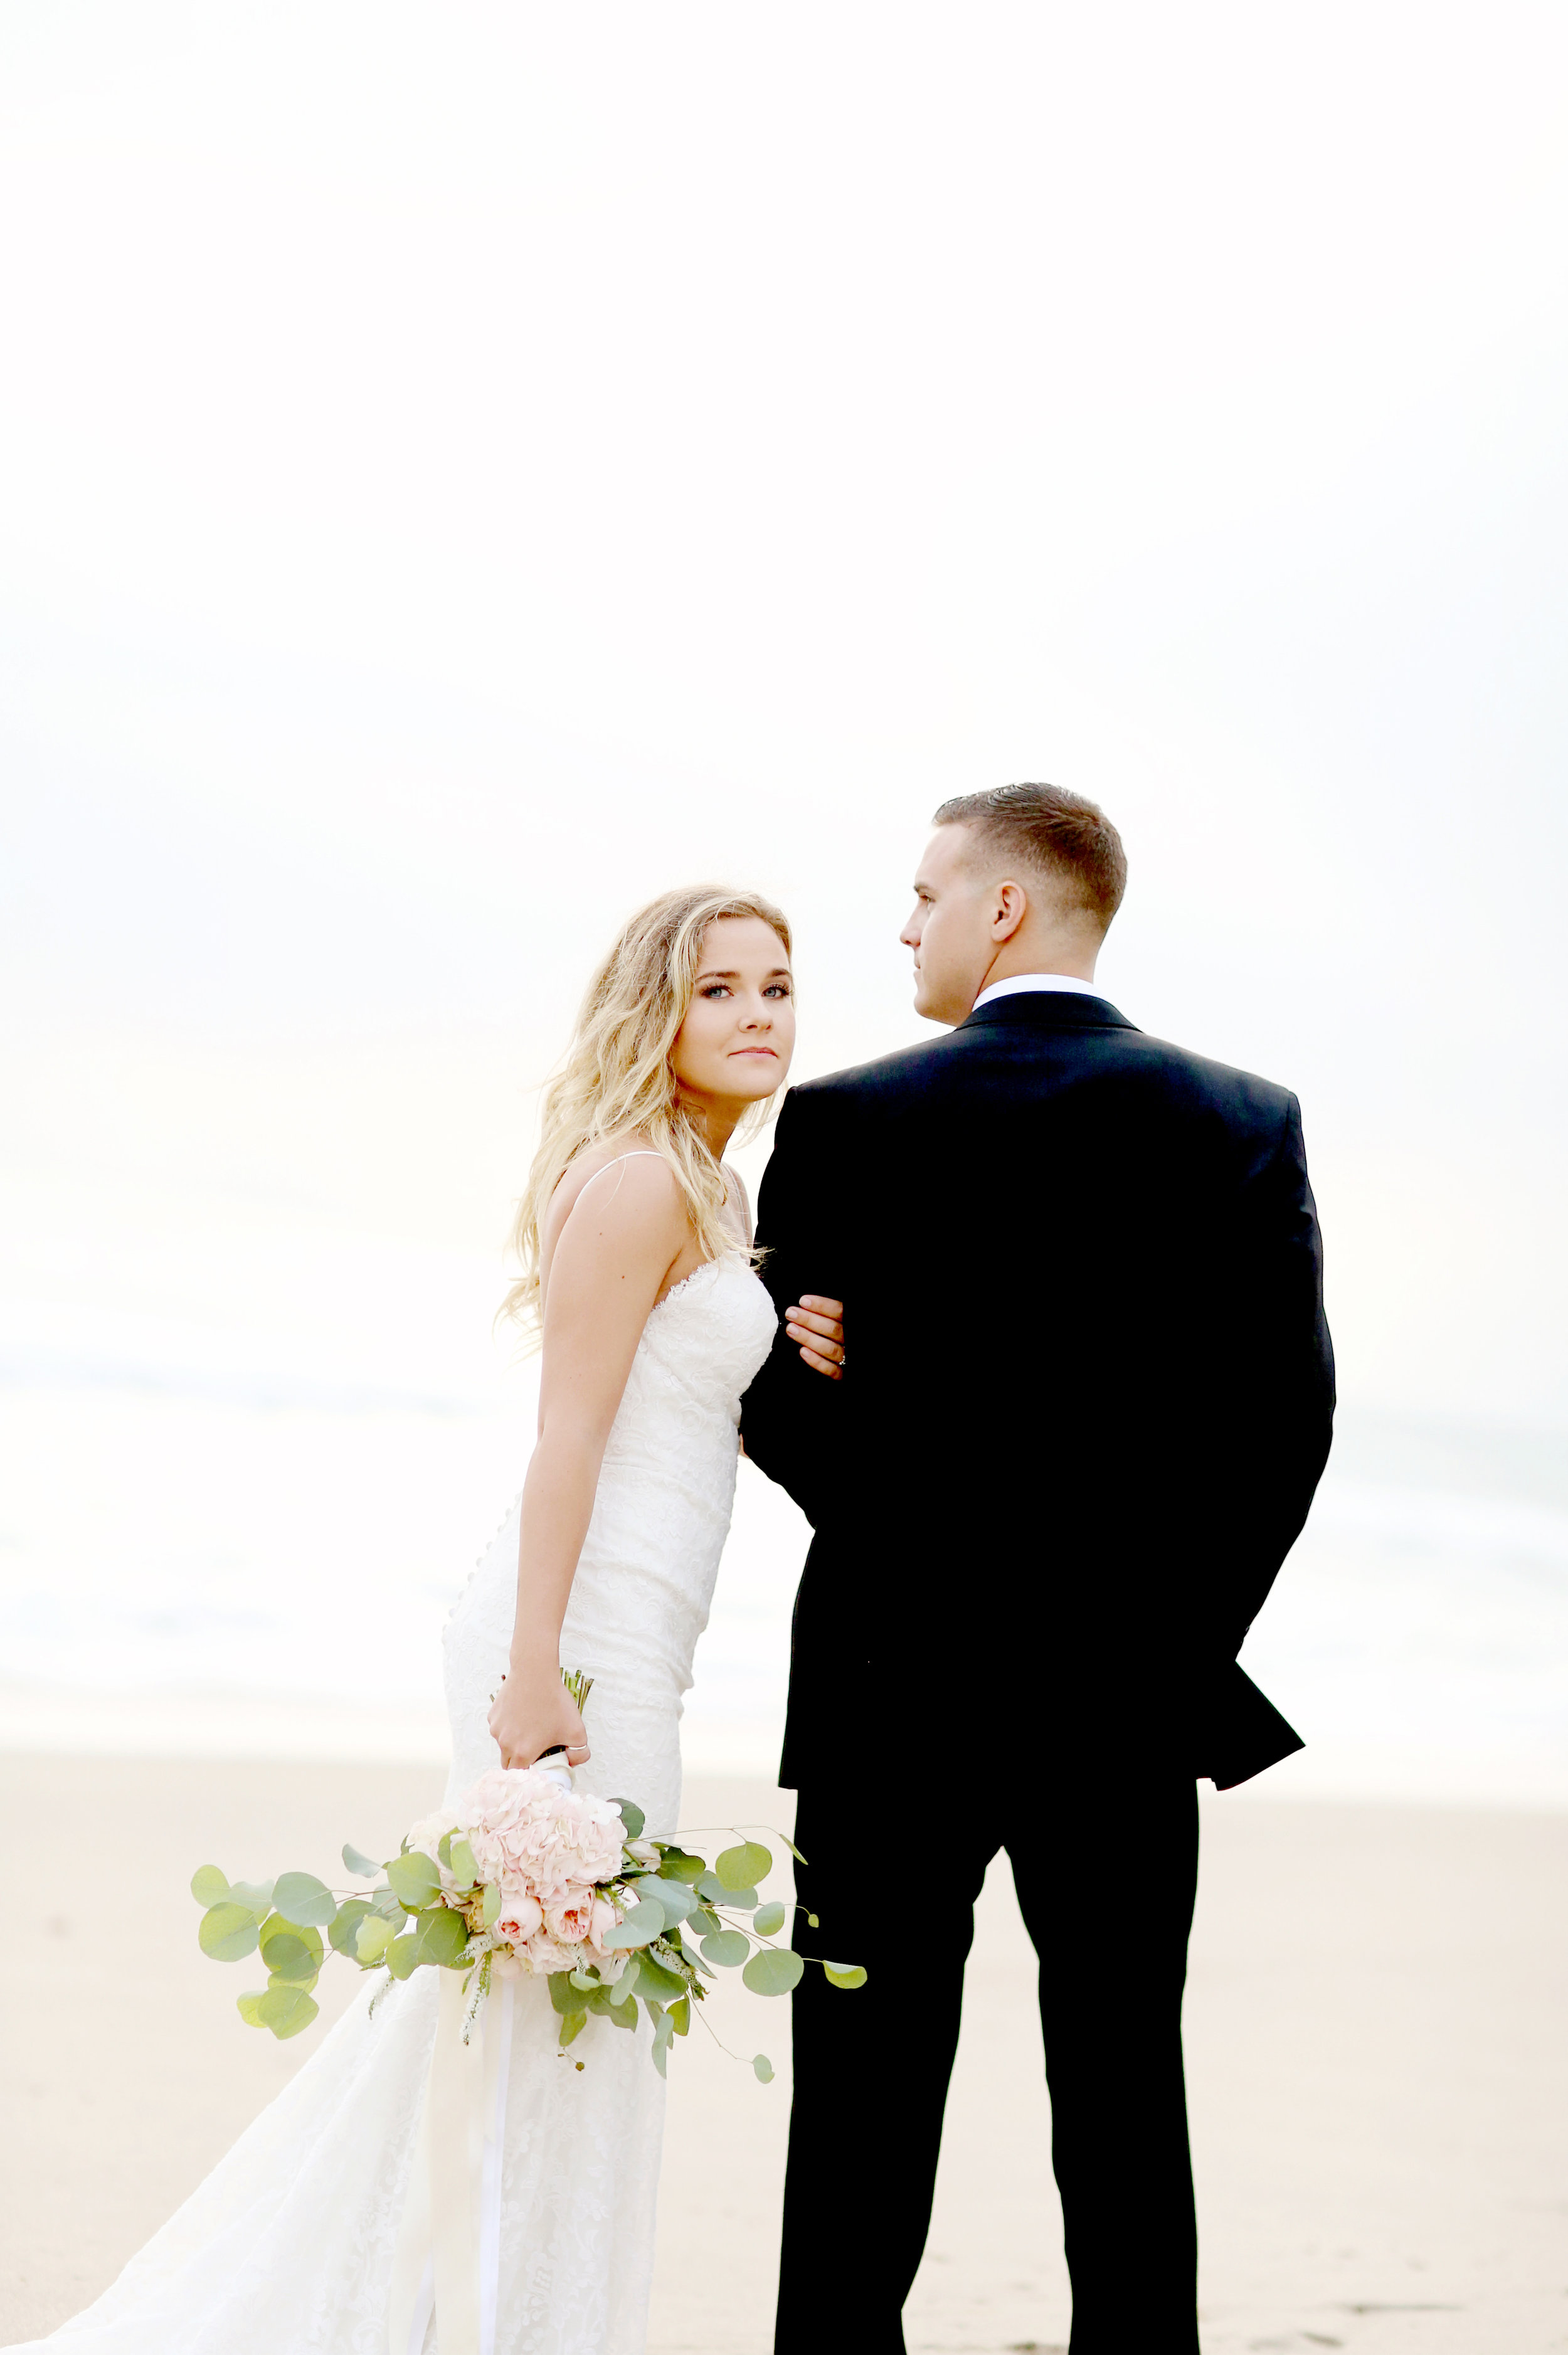 Bride and groom at the beach in San Clemente, Orange County. Bride is holding a pink bouquet by  Bleudog Floral